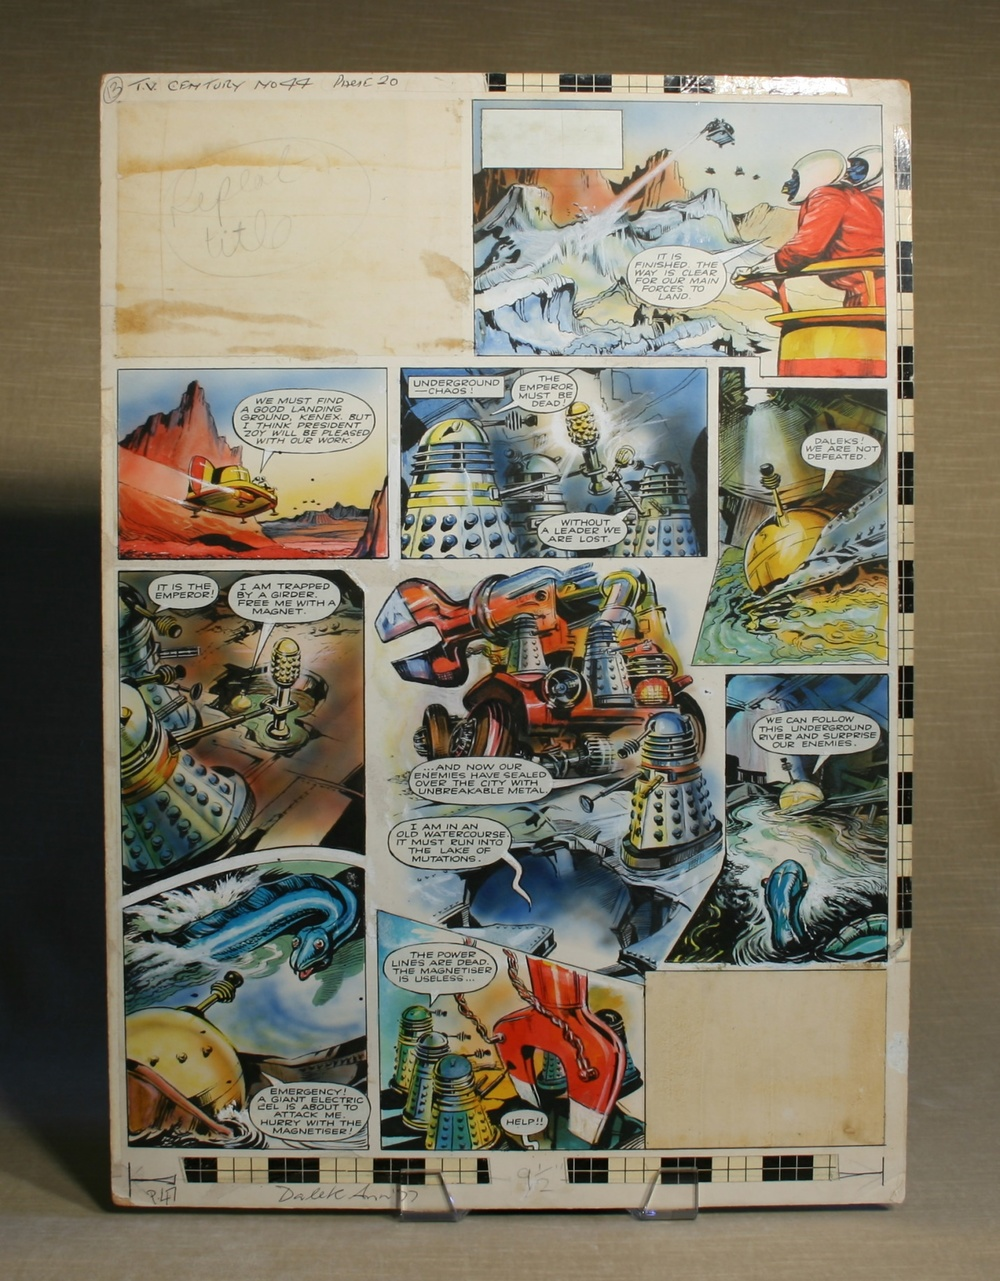 Original Dalek strip artwork, TV Century 21 #44